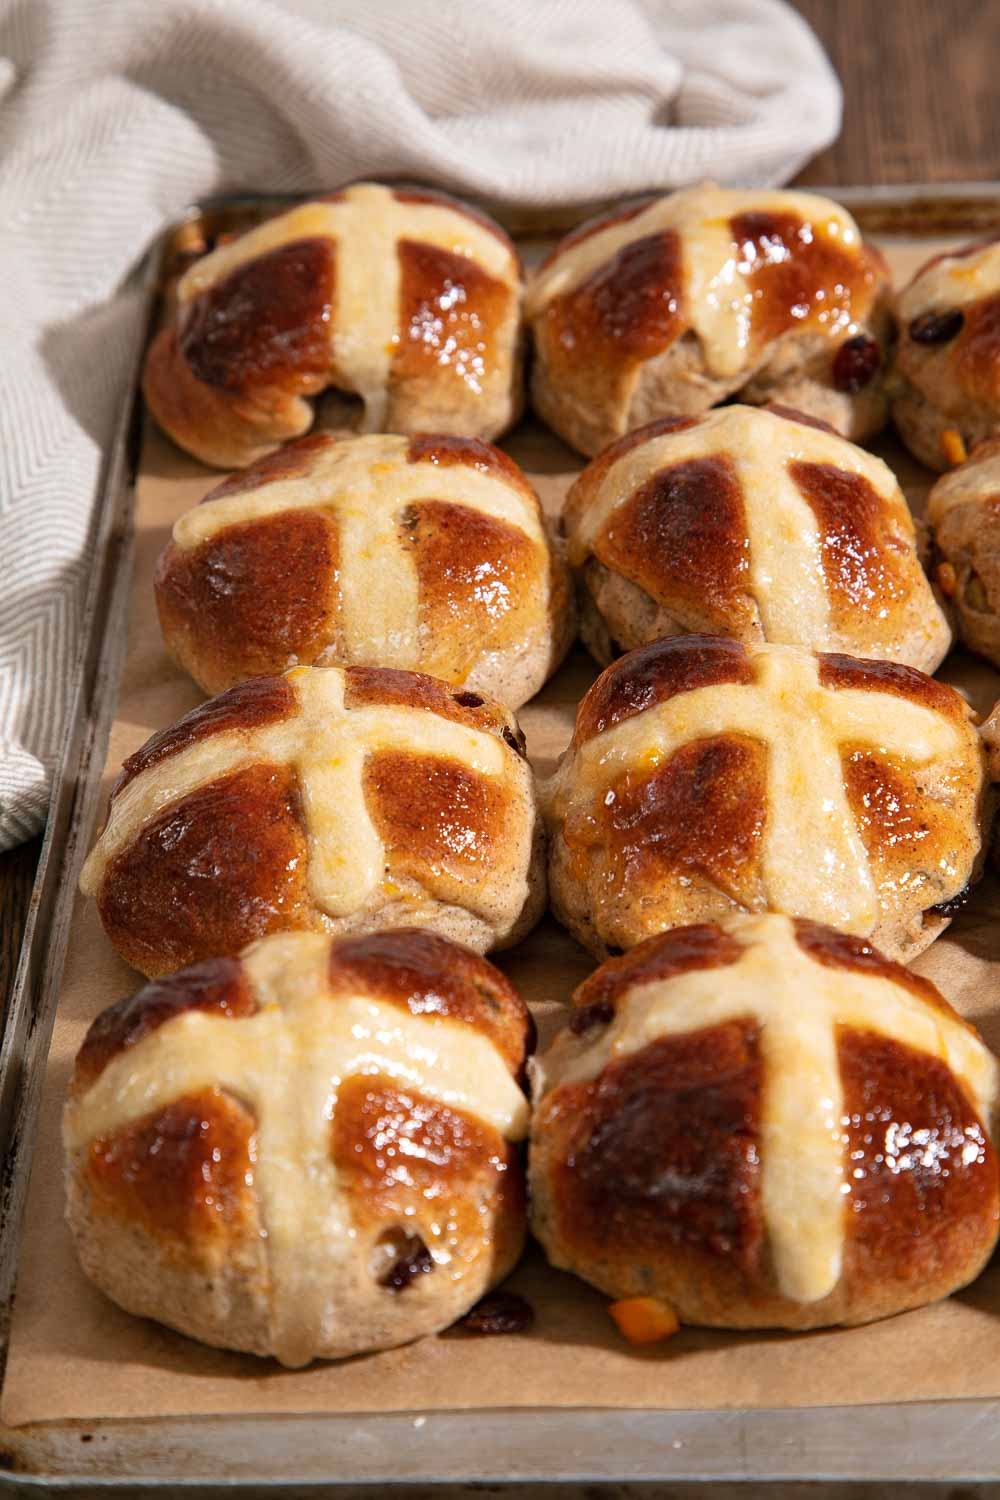 Vegan Hot Cross Buns, cooling on a wire rack.